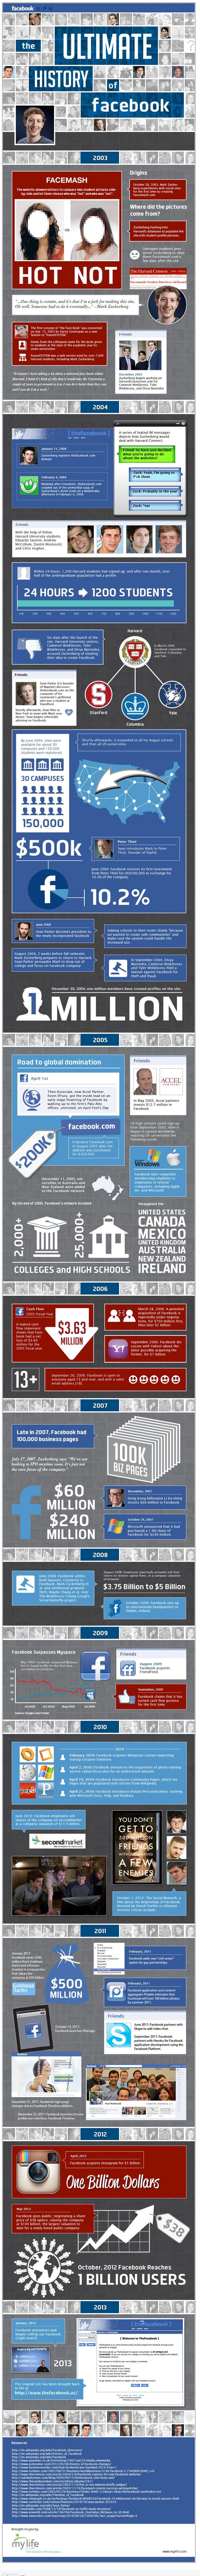 Facebook history infographic